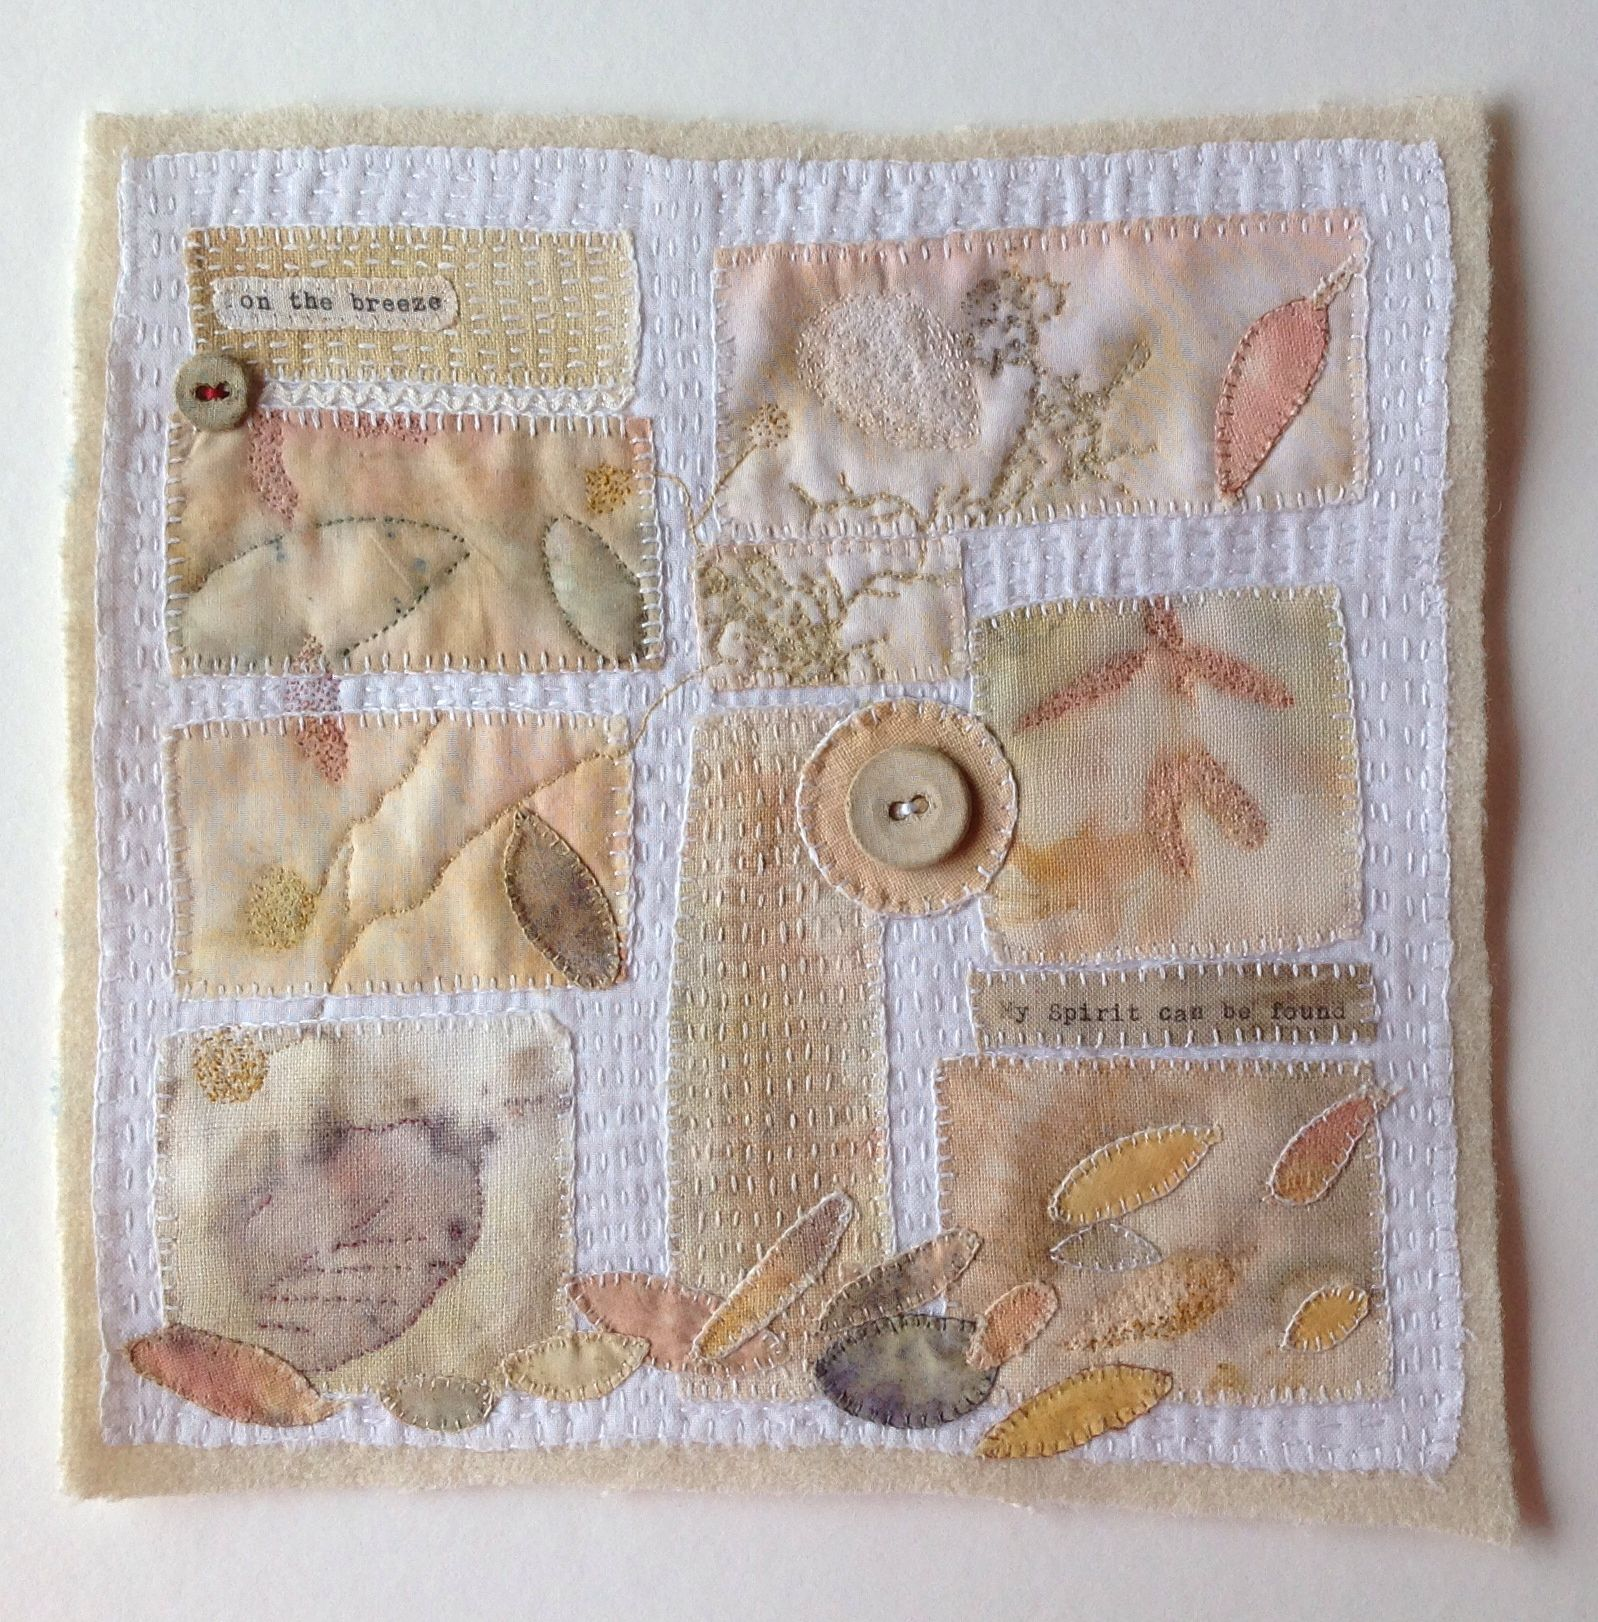 Eco print Collage, vintage buttons, hand stitched by Marilyn Stephens.